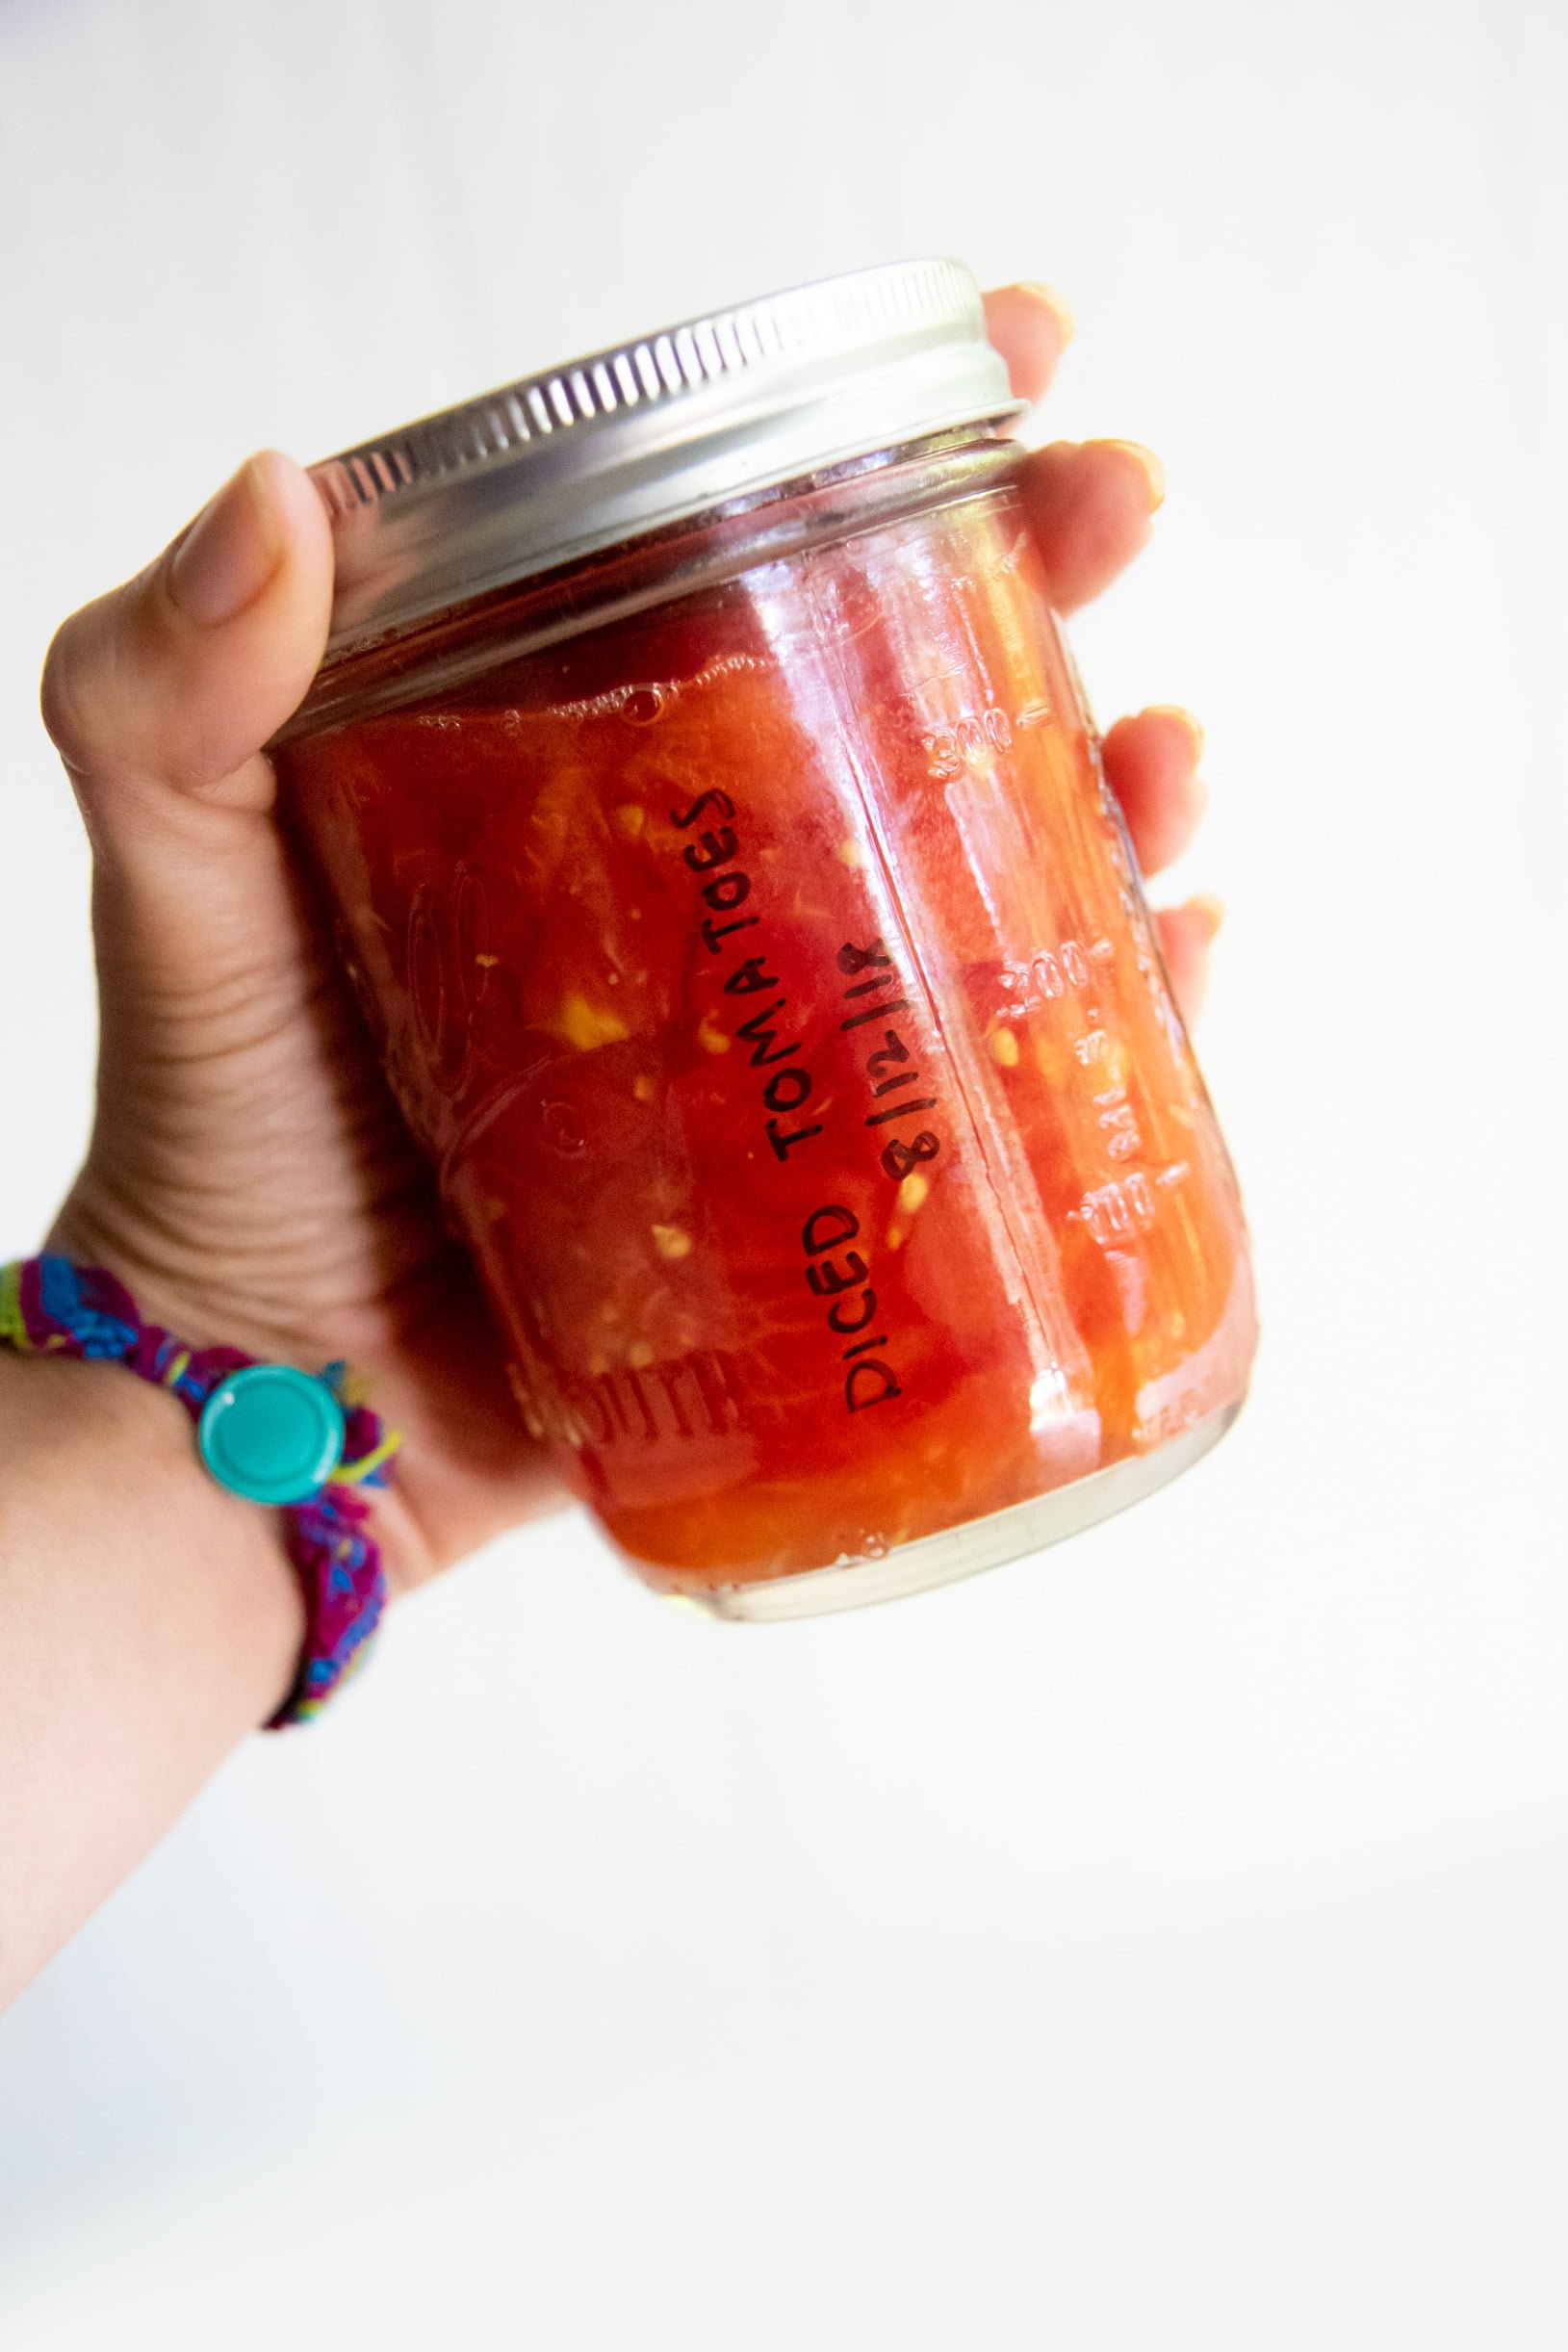 Hand holding a glass jar of diced tomatoes - how to can diced tomatoes